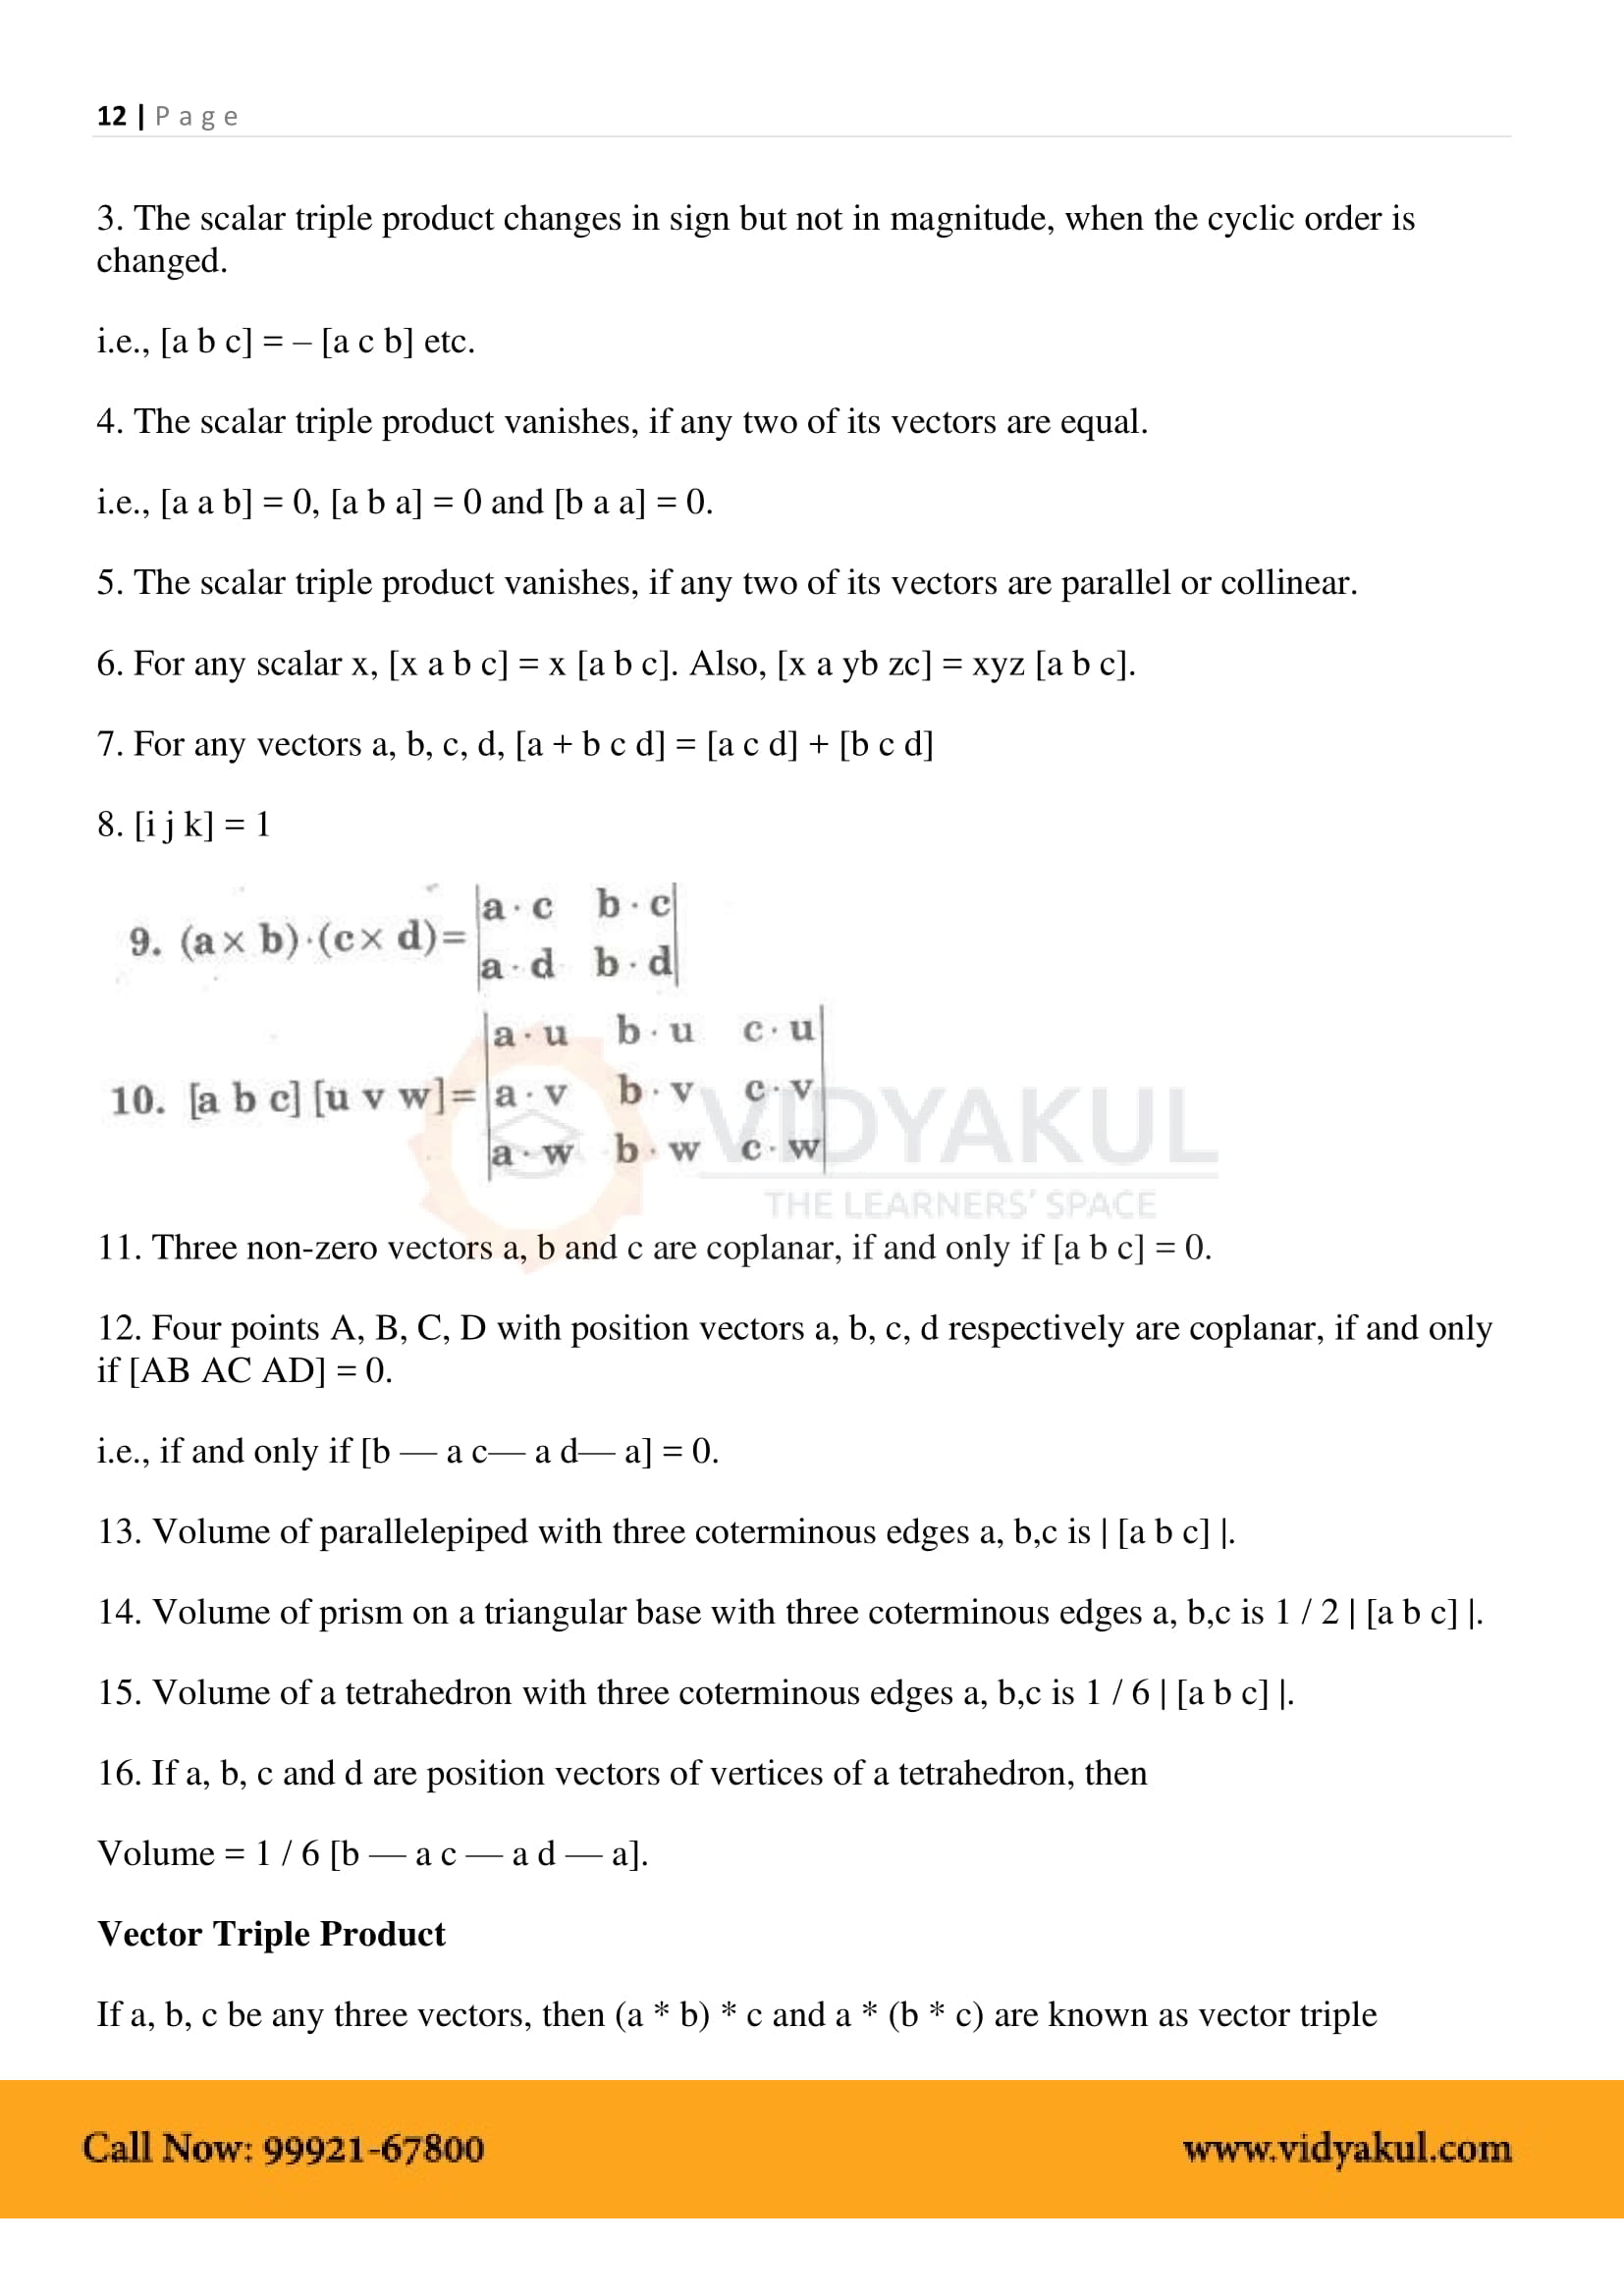 Vector Algebra Class 12 Formulas PDF with Notes | Vidyakul